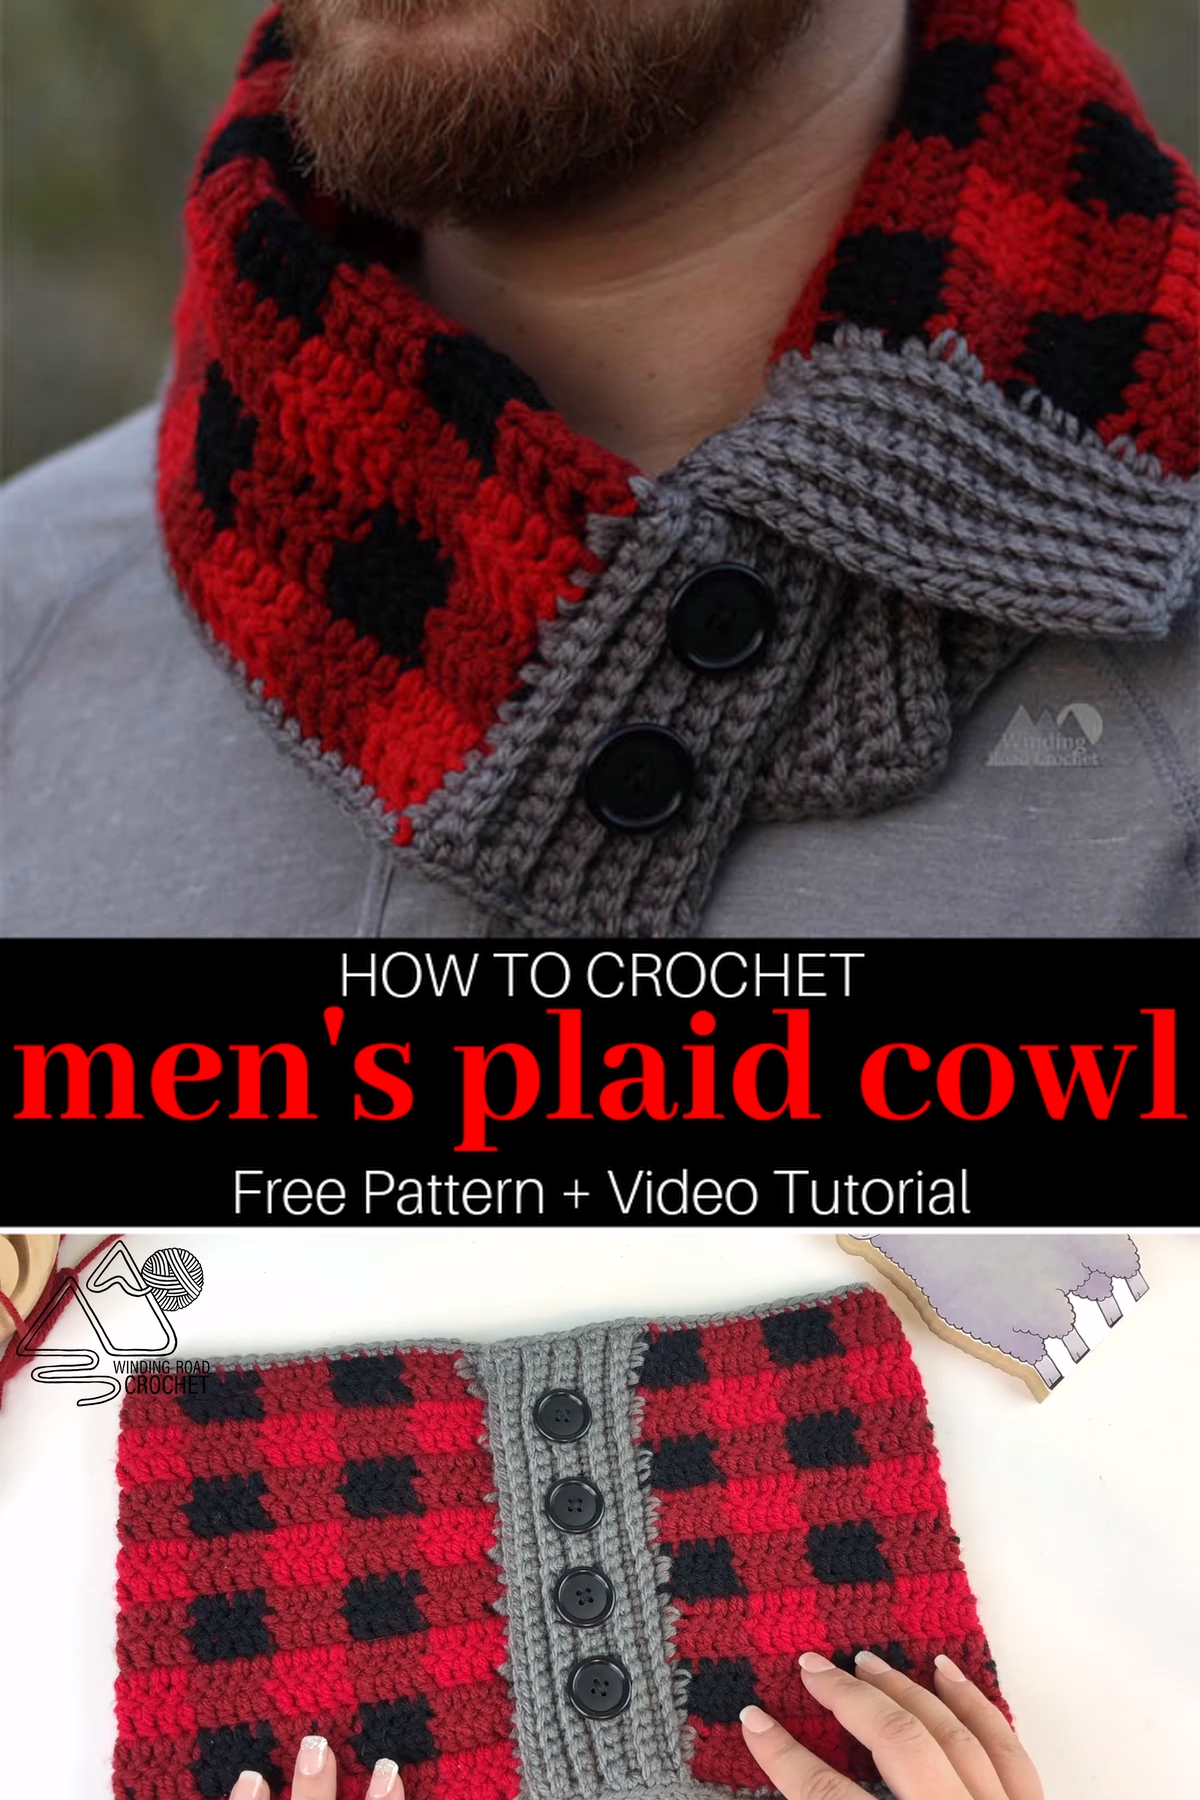 Easy Men's Plaid Cowl Crochet Pattern and Video Tutorial – bere atkı